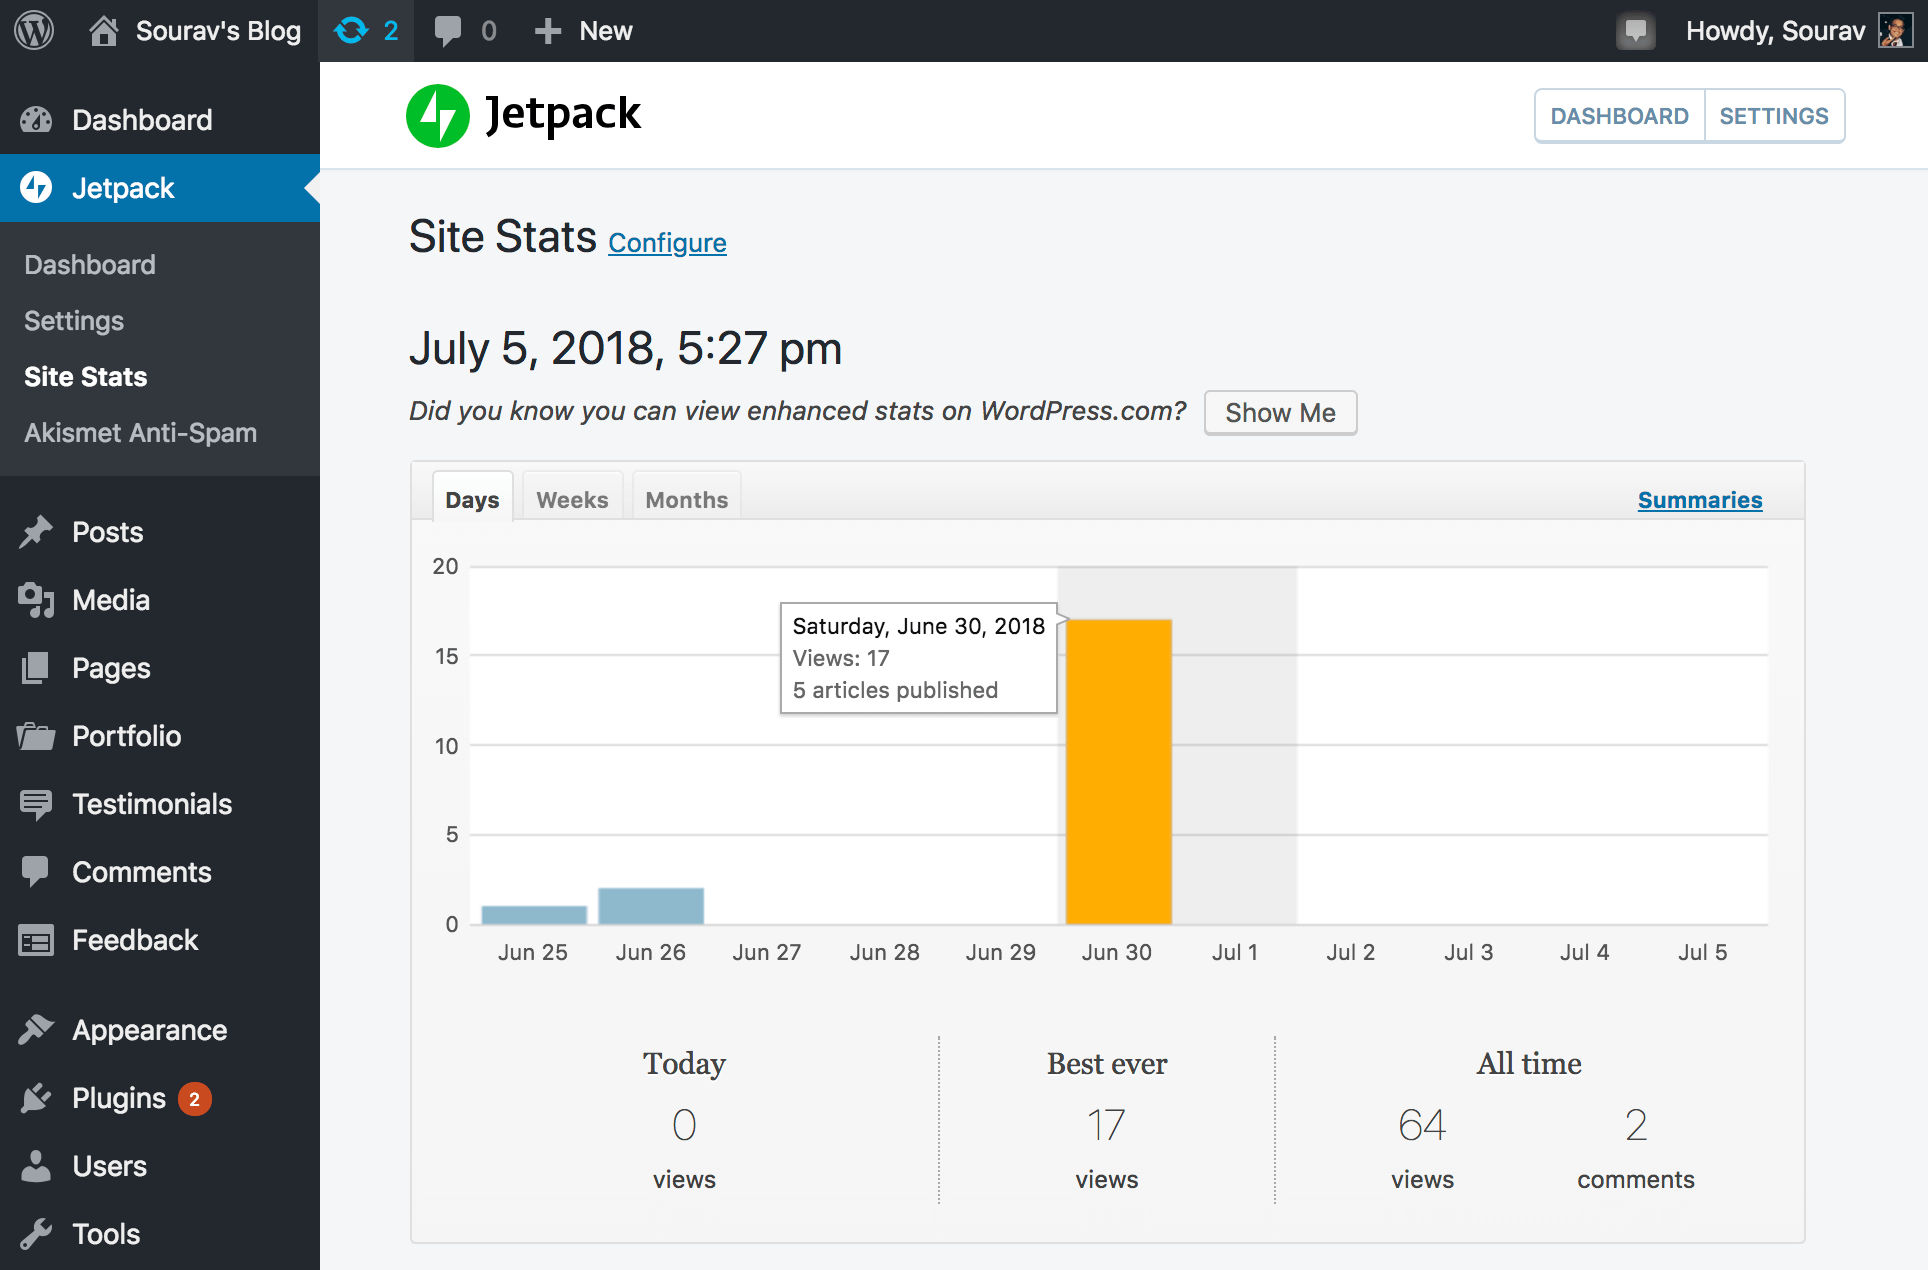 Example of Jetpack Site Stats